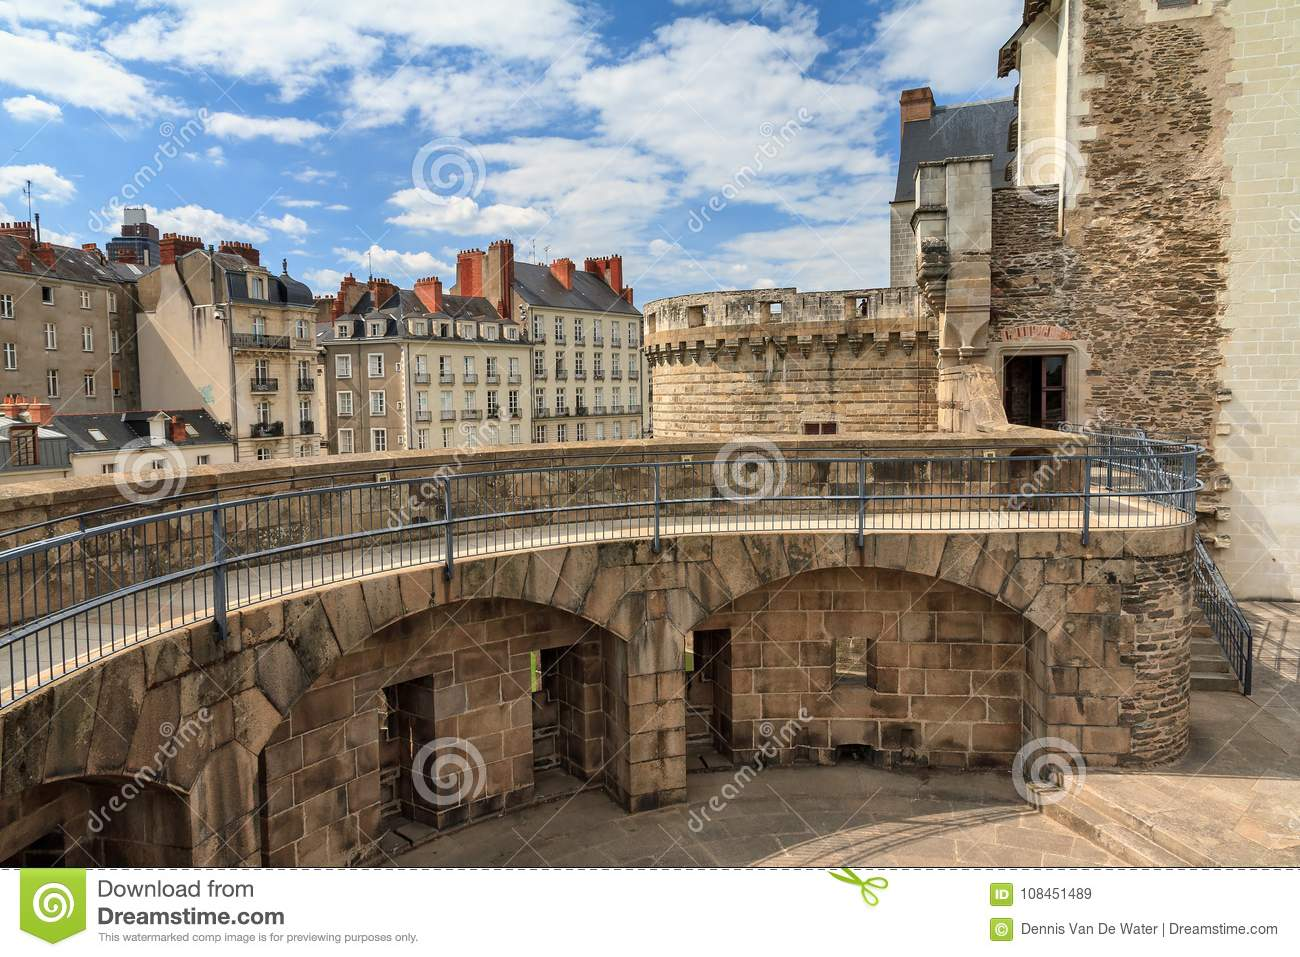 6f8460994e Beautiful summer cityscape view of The Château des ducs de Bretagne Castle  of the Dukes of Brittany a large castle located in the city of Nantes